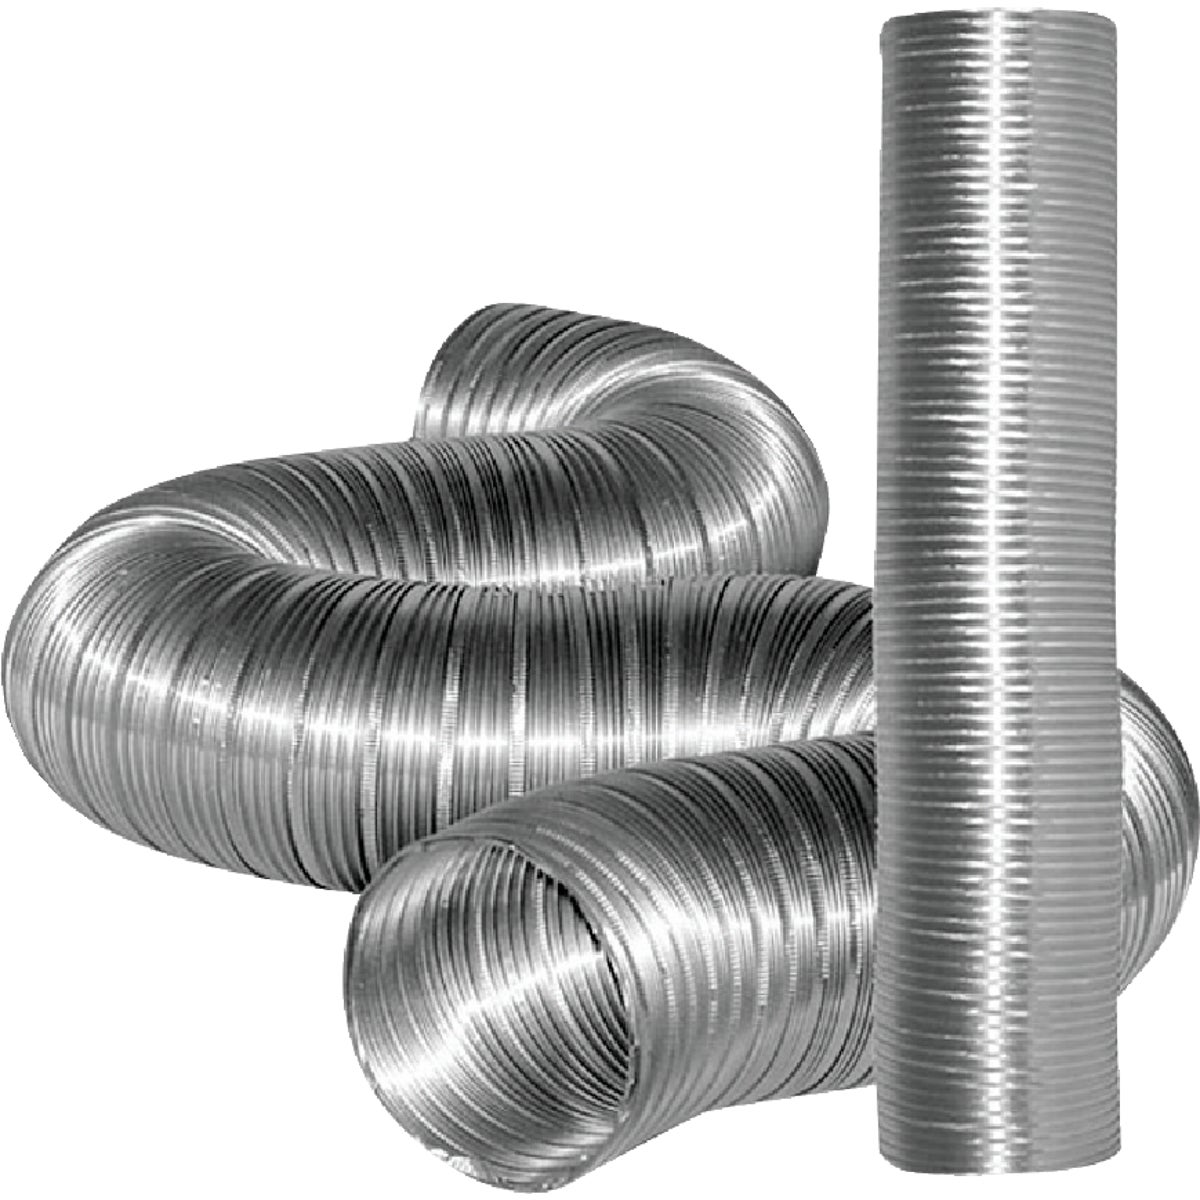 7X8 ALUM FLEXIBLE DUCT